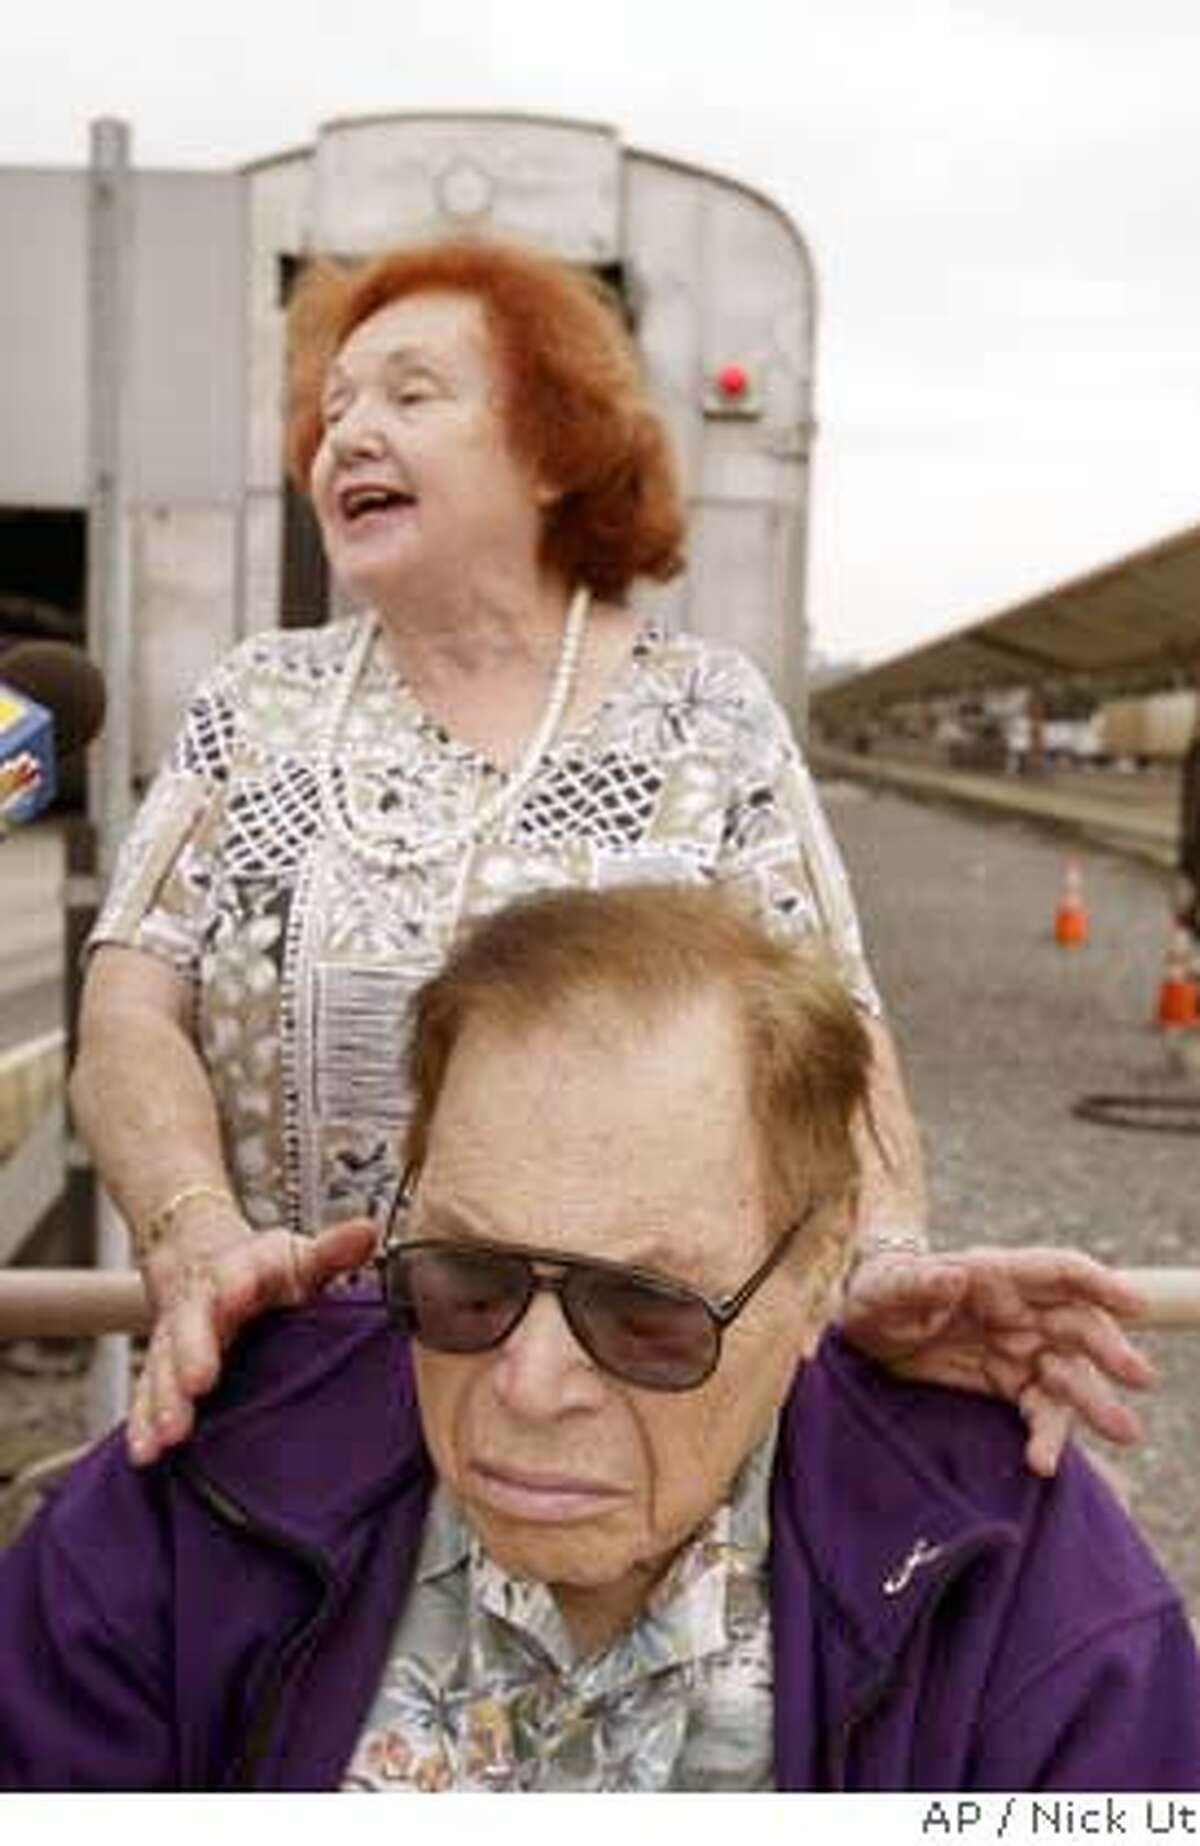 """Carl Barstow and his wife, Stephanie, wait to board a train at Union station in Los Angeles, Monday, Aug. 23, 2004, en route to Canada protesting against high U.S. drug prices. The """"Rx Express"""" was arranged by a taxpayers' group to take 25 senior citizens, small business owners and others on a trip to dramatize the group's call for the government to negotiate a national bulk-purchasing program for pharmaceuticals to reduce their cost to Medicare patients and others. (AP Photo/Nick Ut)"""